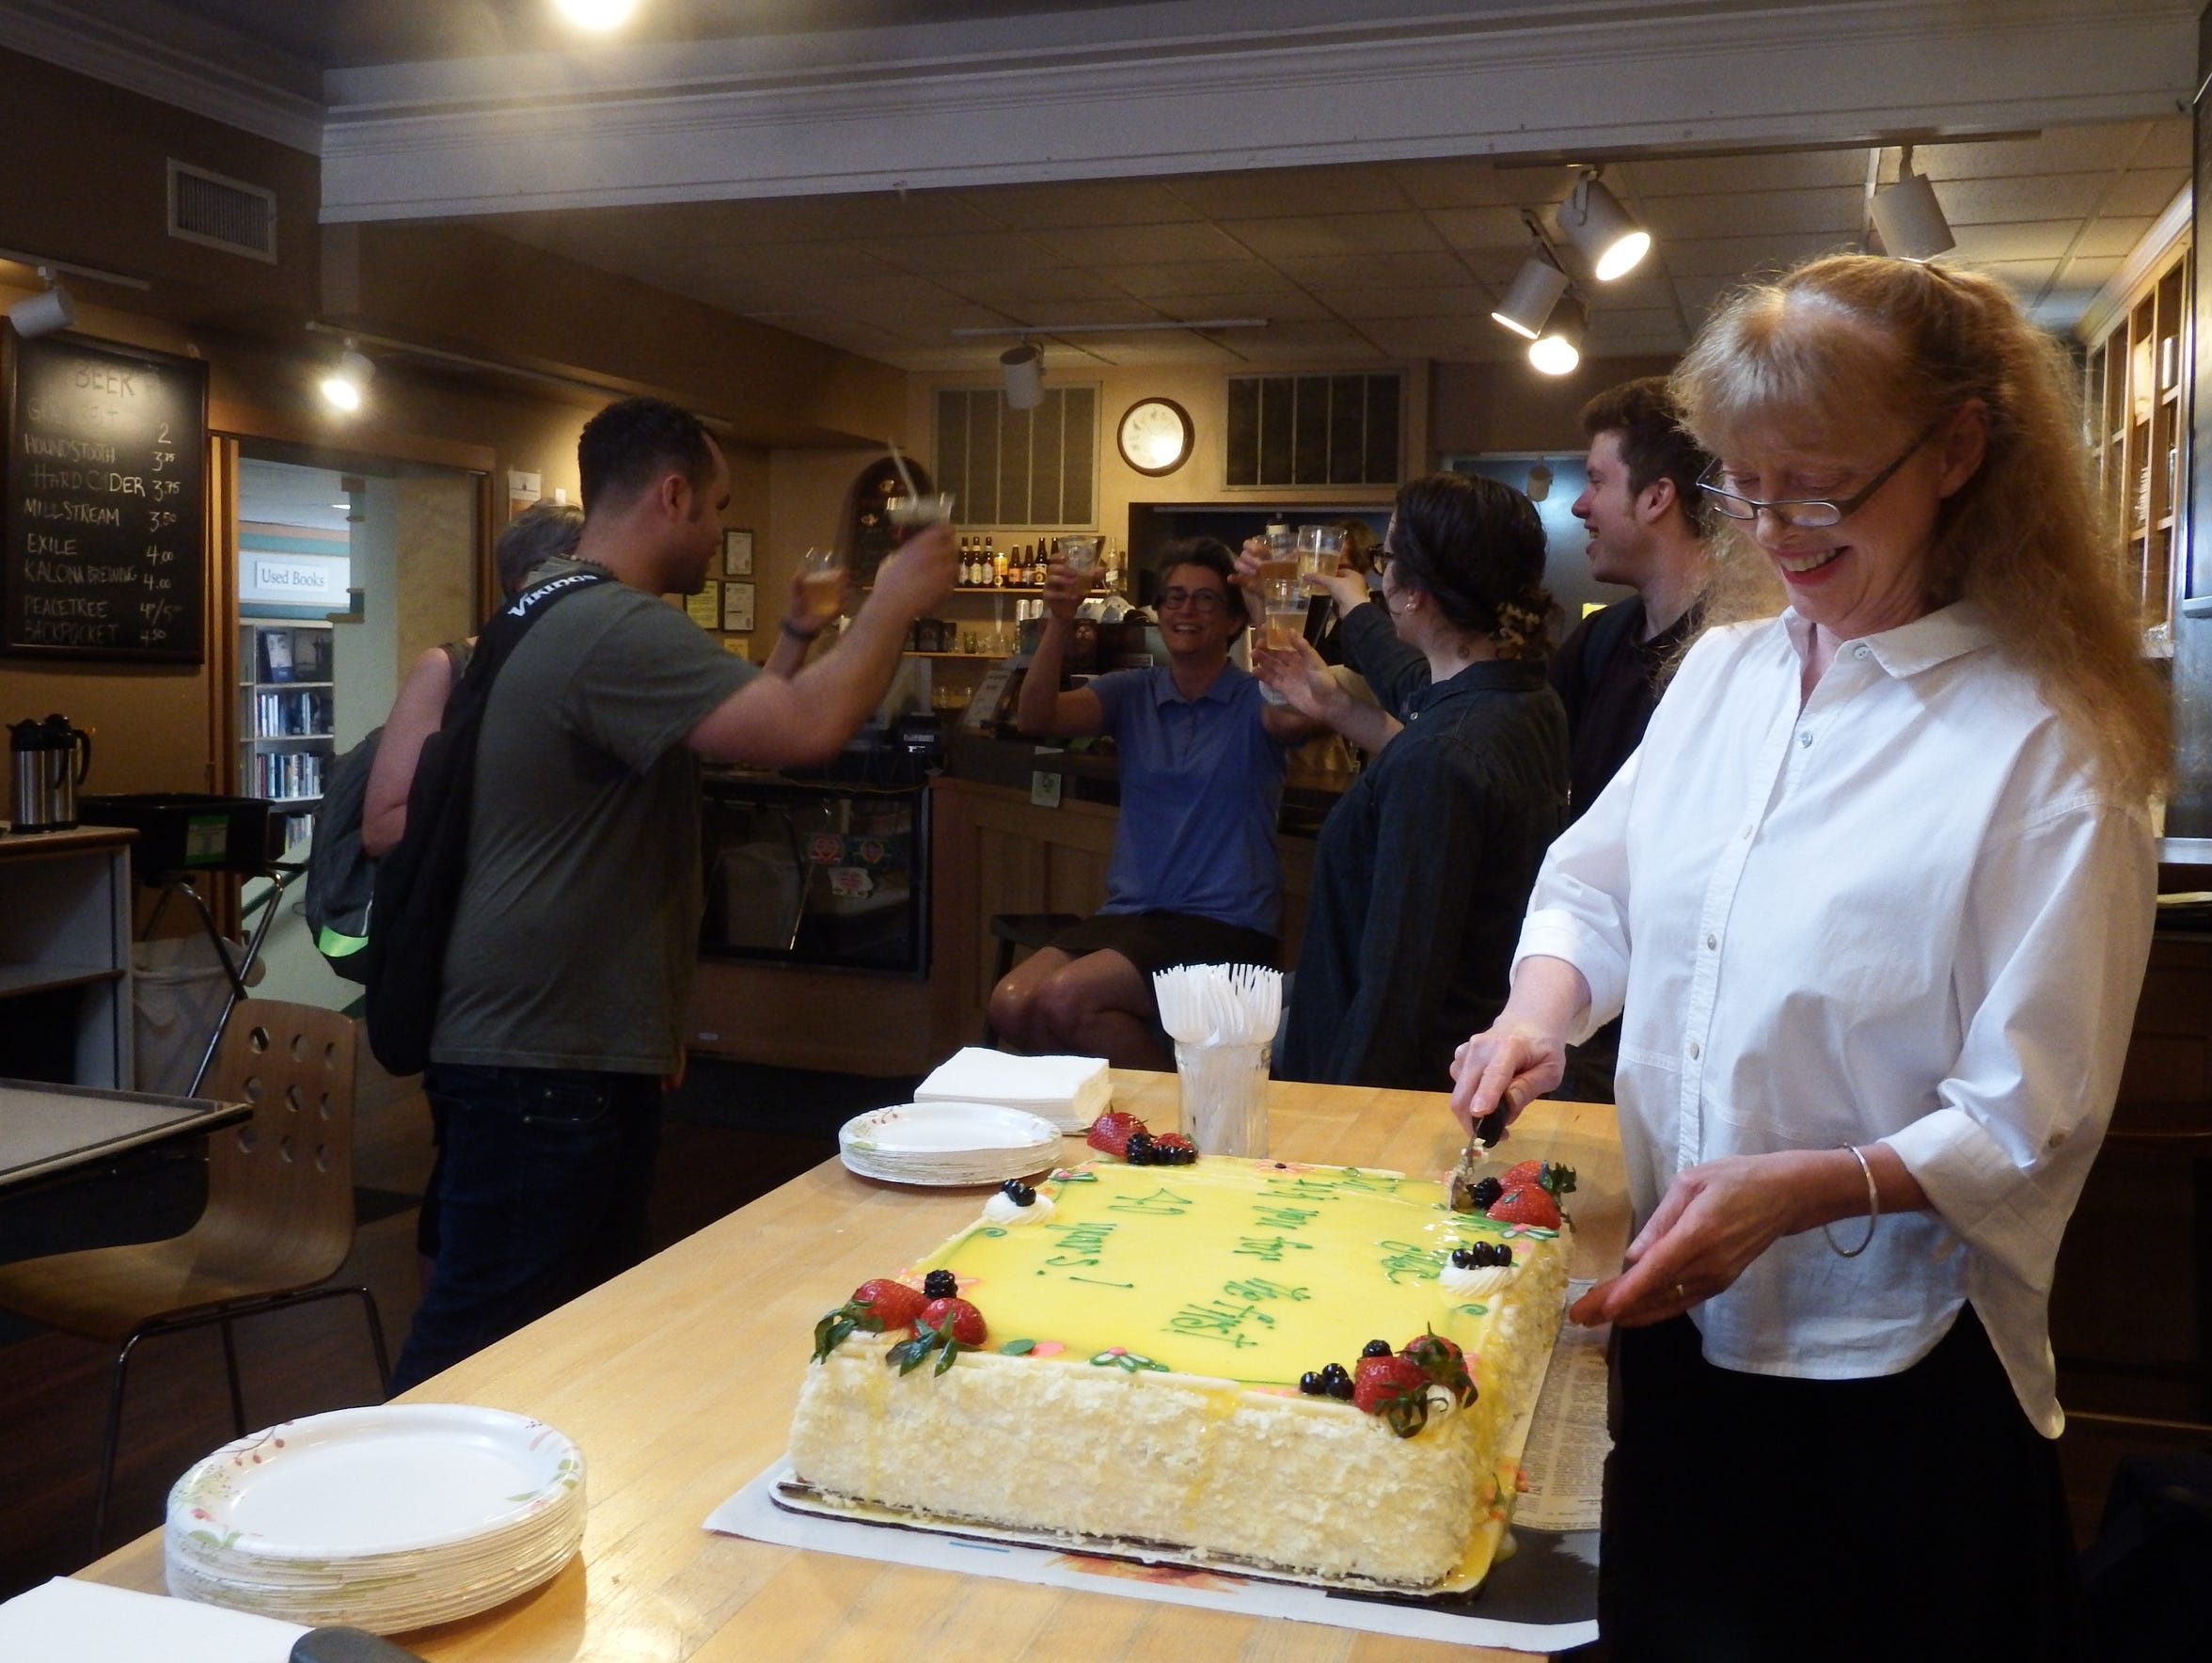 Prairie Lights co-owner Jan Weissmiller cuts a cake